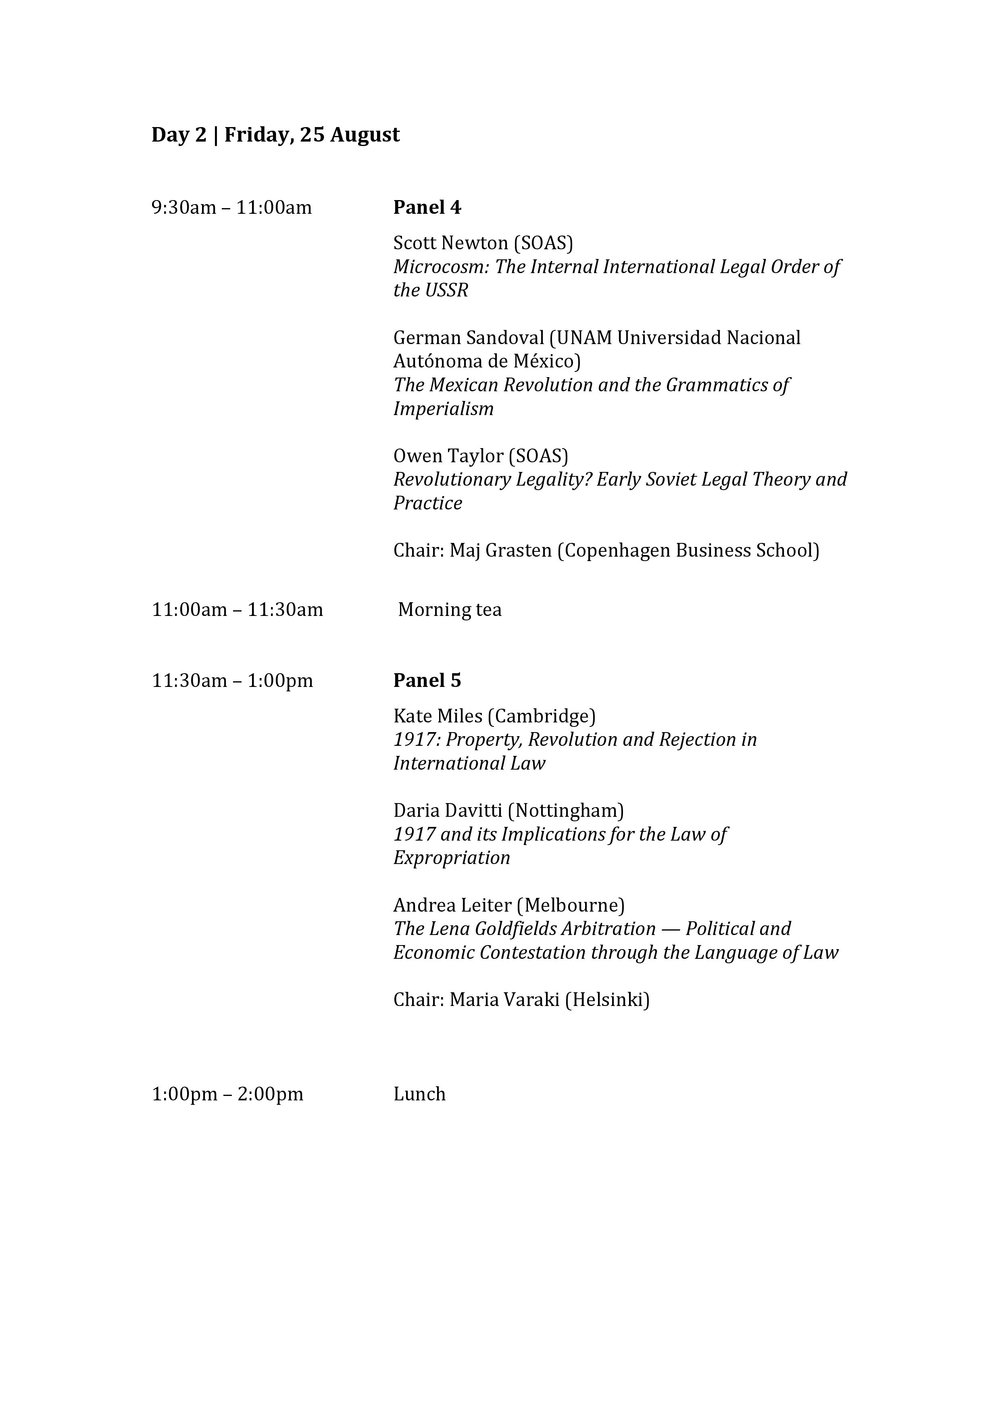 170809 Revolutions conference programme final-page-003.jpg